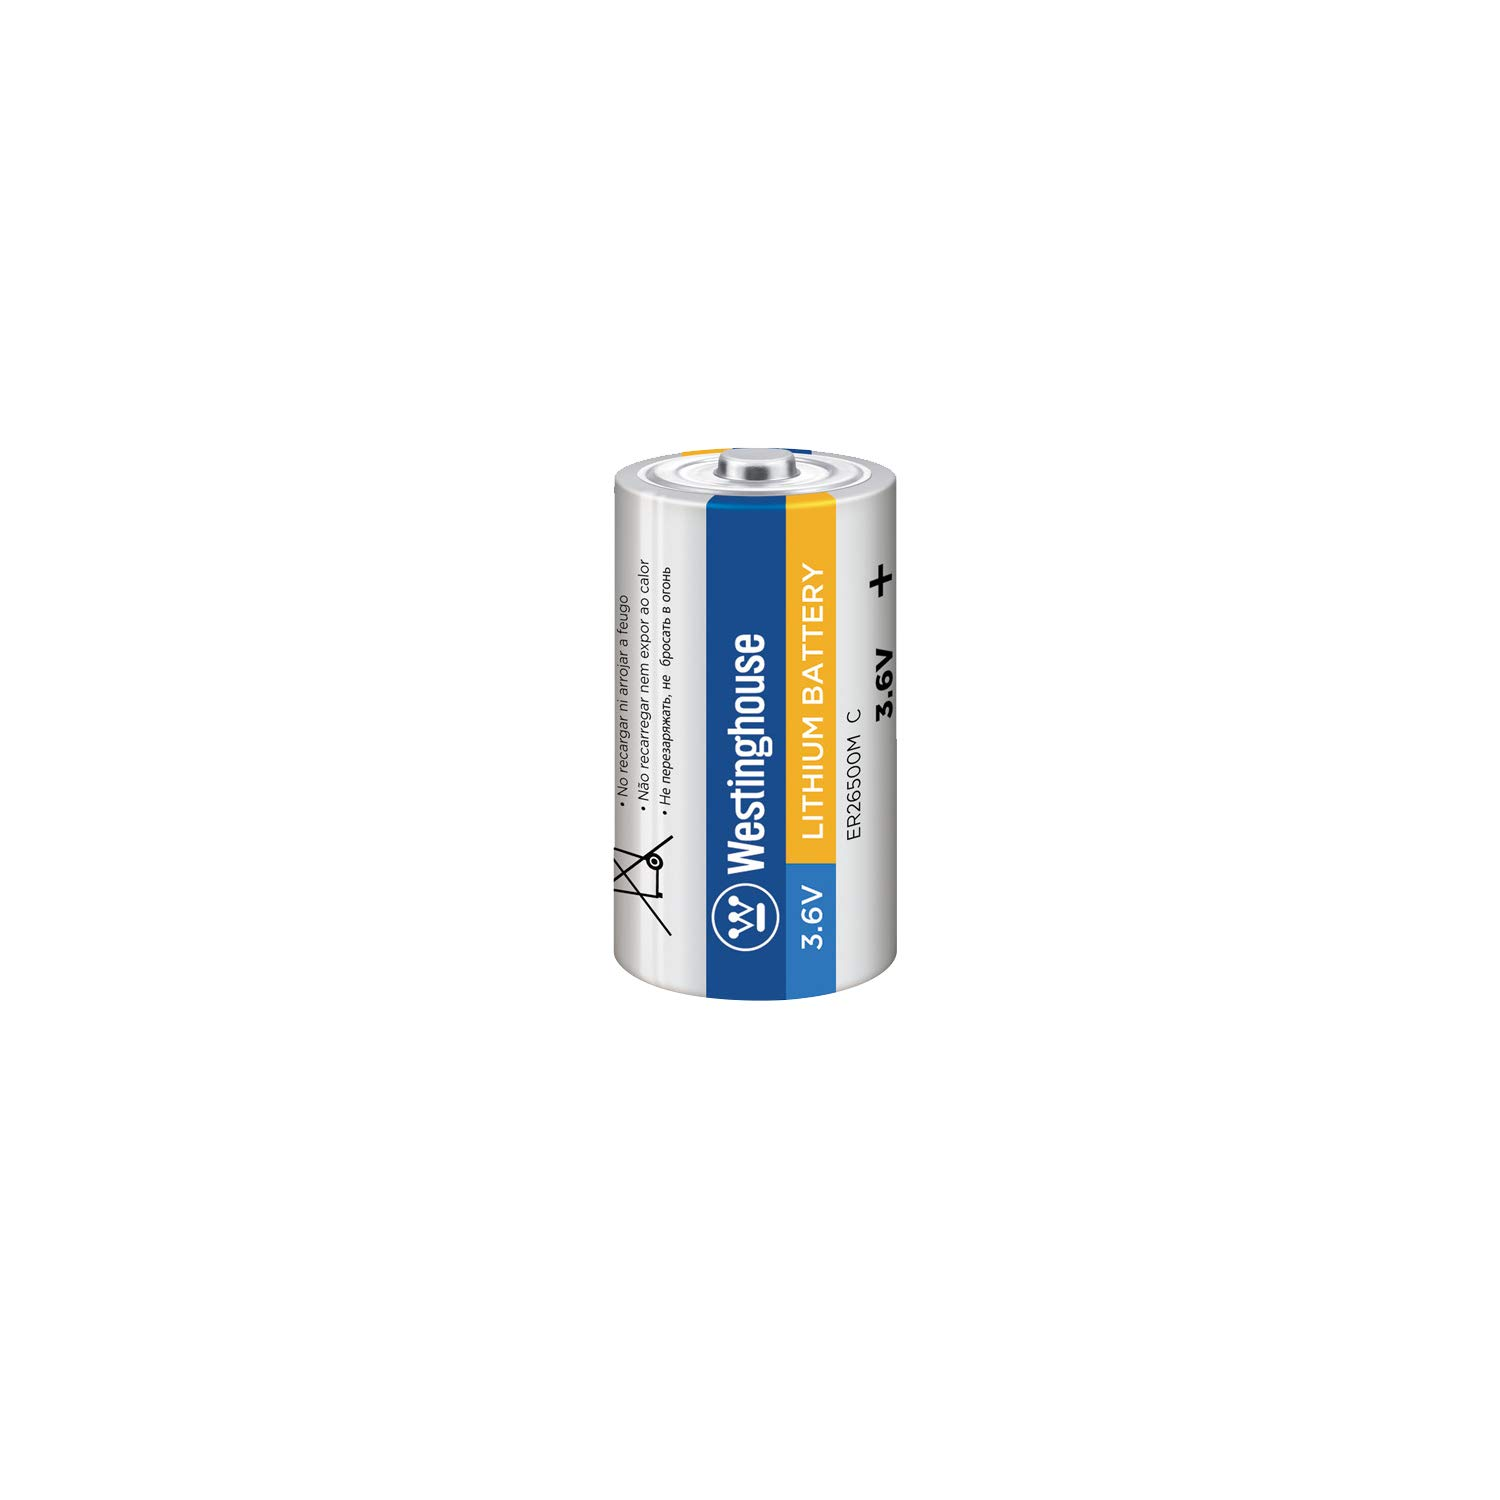 Amazon.com: Westinghouse ER26500 C Size 3.6V 9000mAh Li-Socl2 Lithium Thionyl Chloride Primary Non-Rechargeable Battery (1 Count): Home Audio & Theater